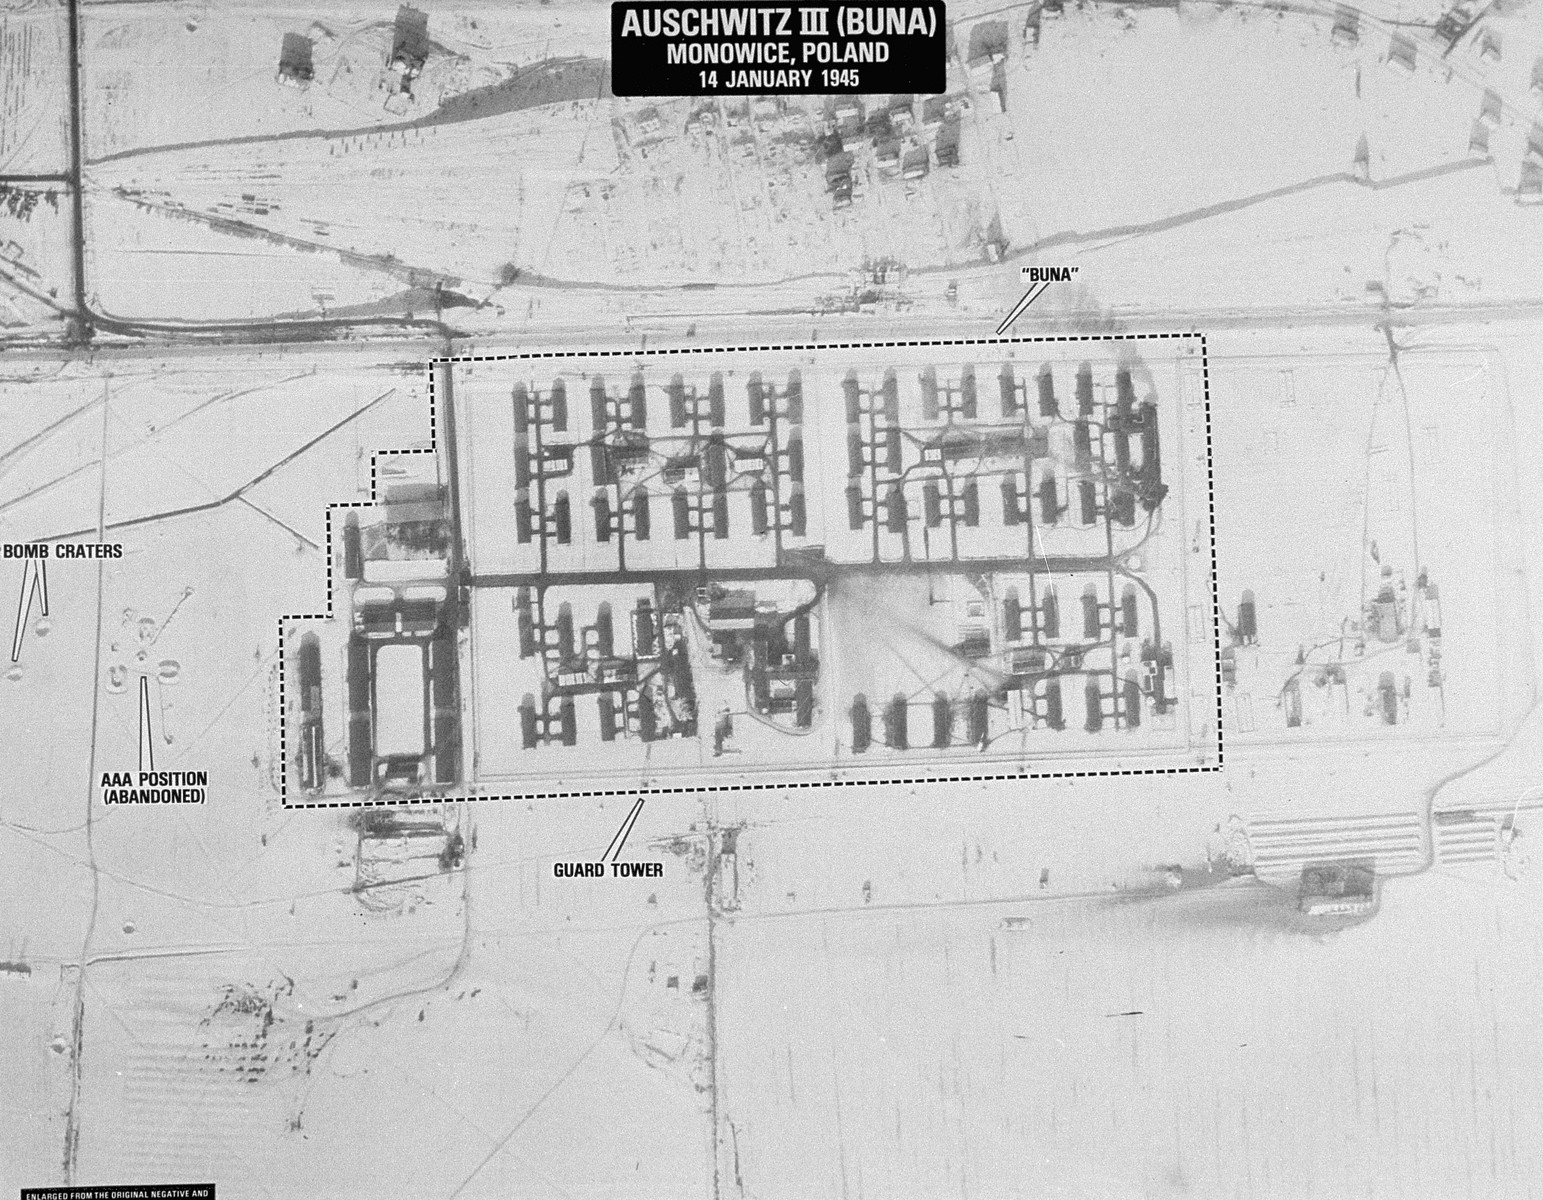 An aerial reconnaissance photograph of the Auschwitz concentration camp showing the Auschwitz III (Buna plant).